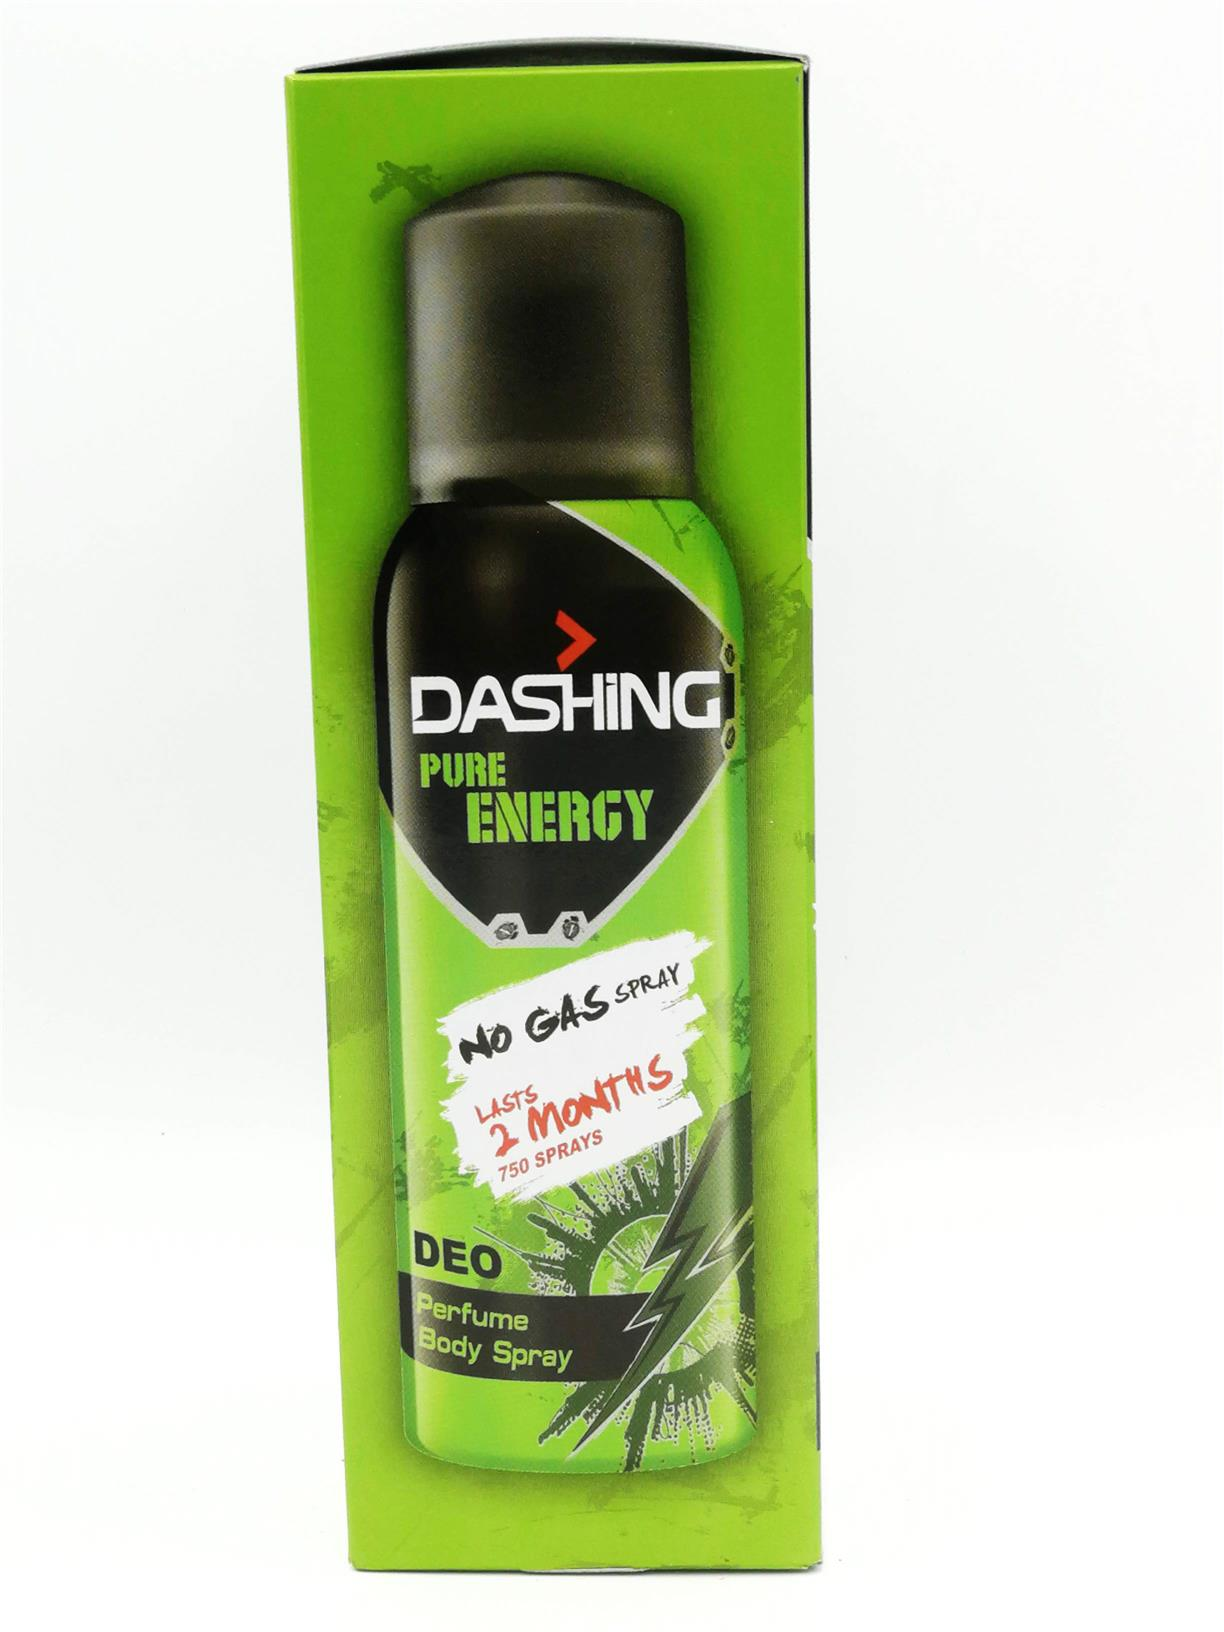 Dashing No Gas Pure Energy Deodorant Spray